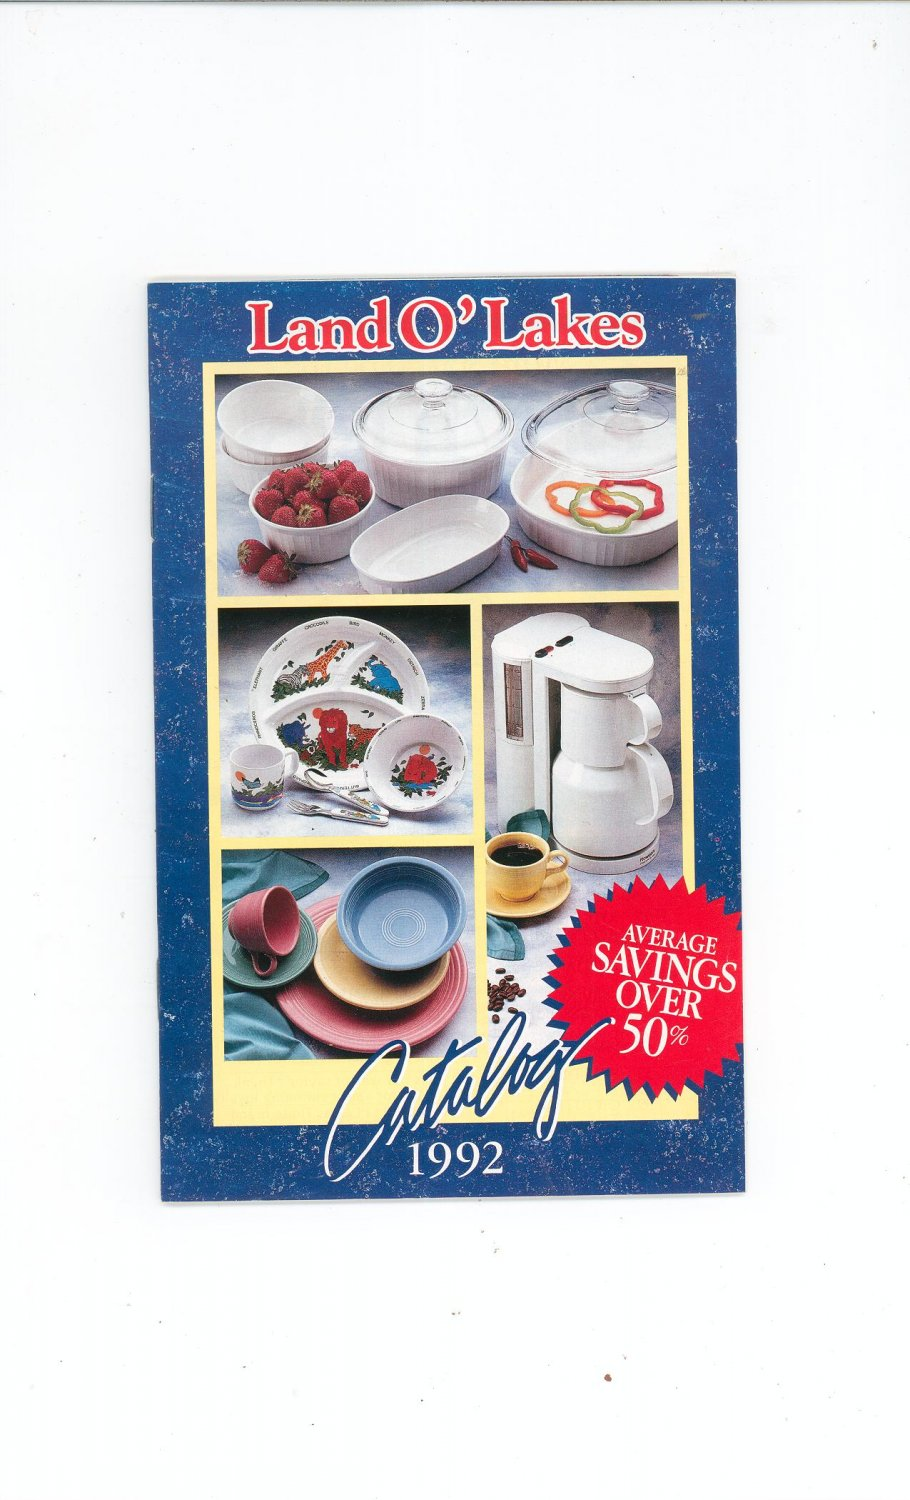 Land O Lakes Catalog 1992 Complete With Order Form Land O' Lakes